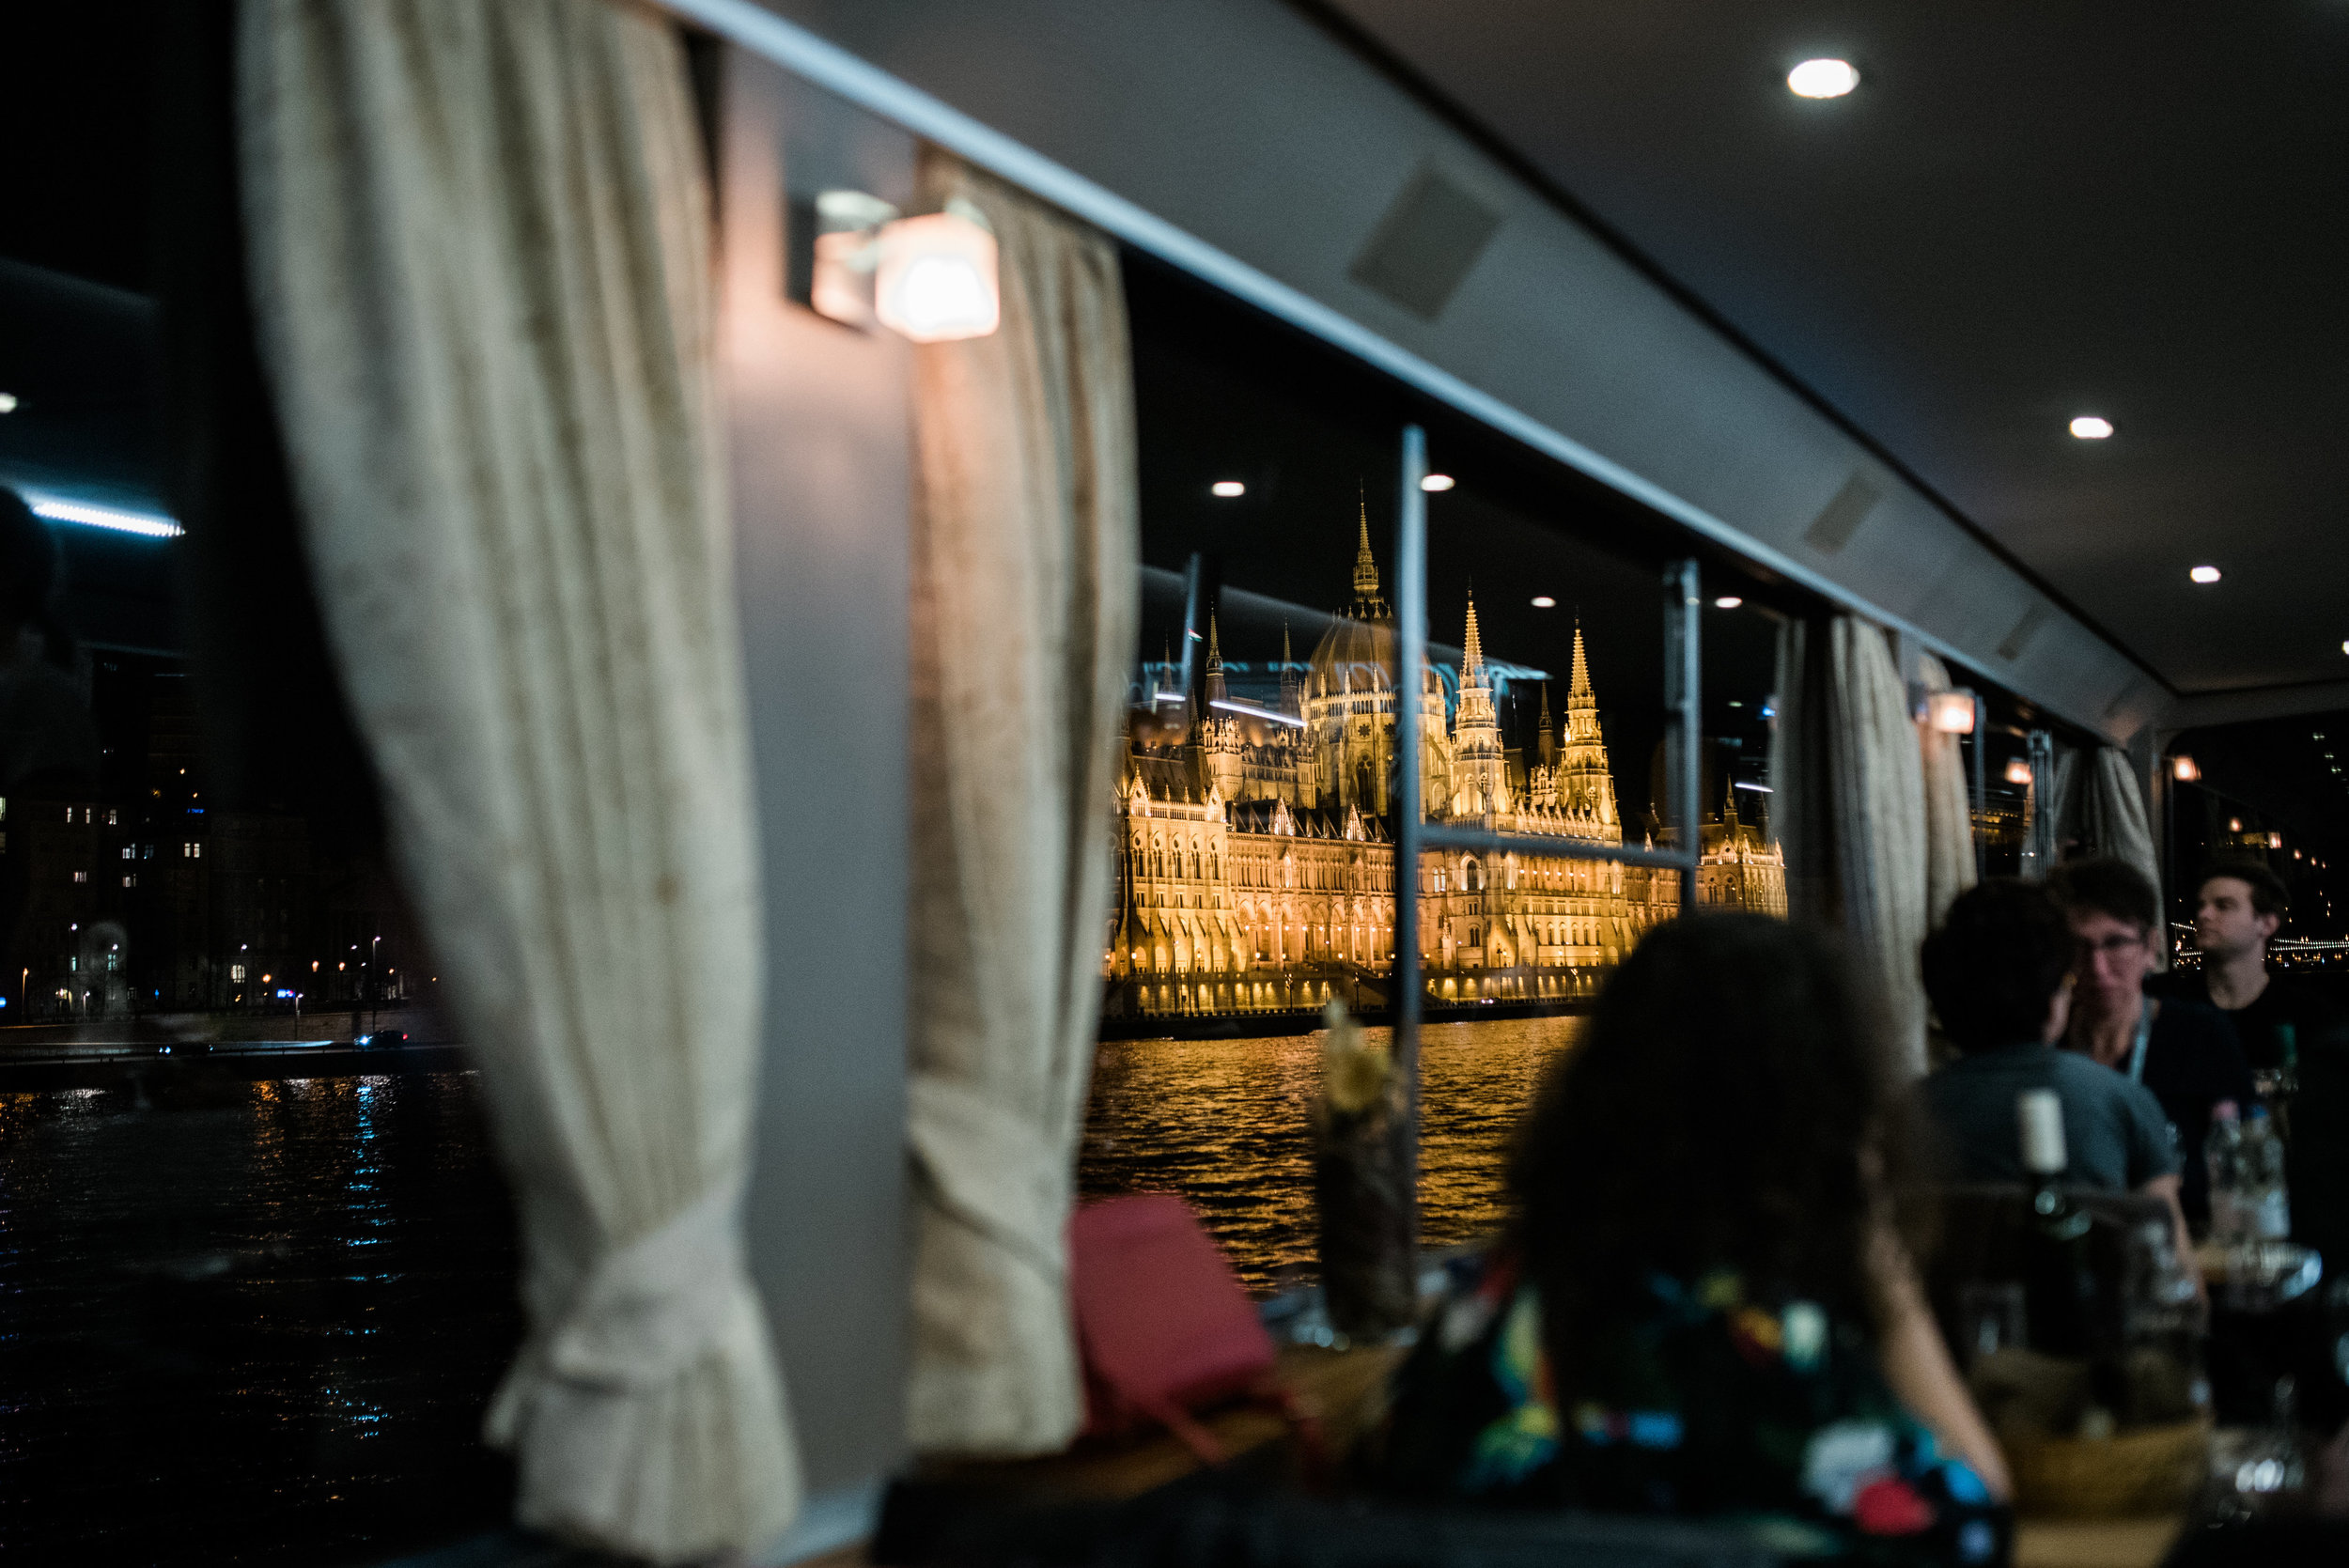 The first night of the conference, we went on a river cruise on the Danube.